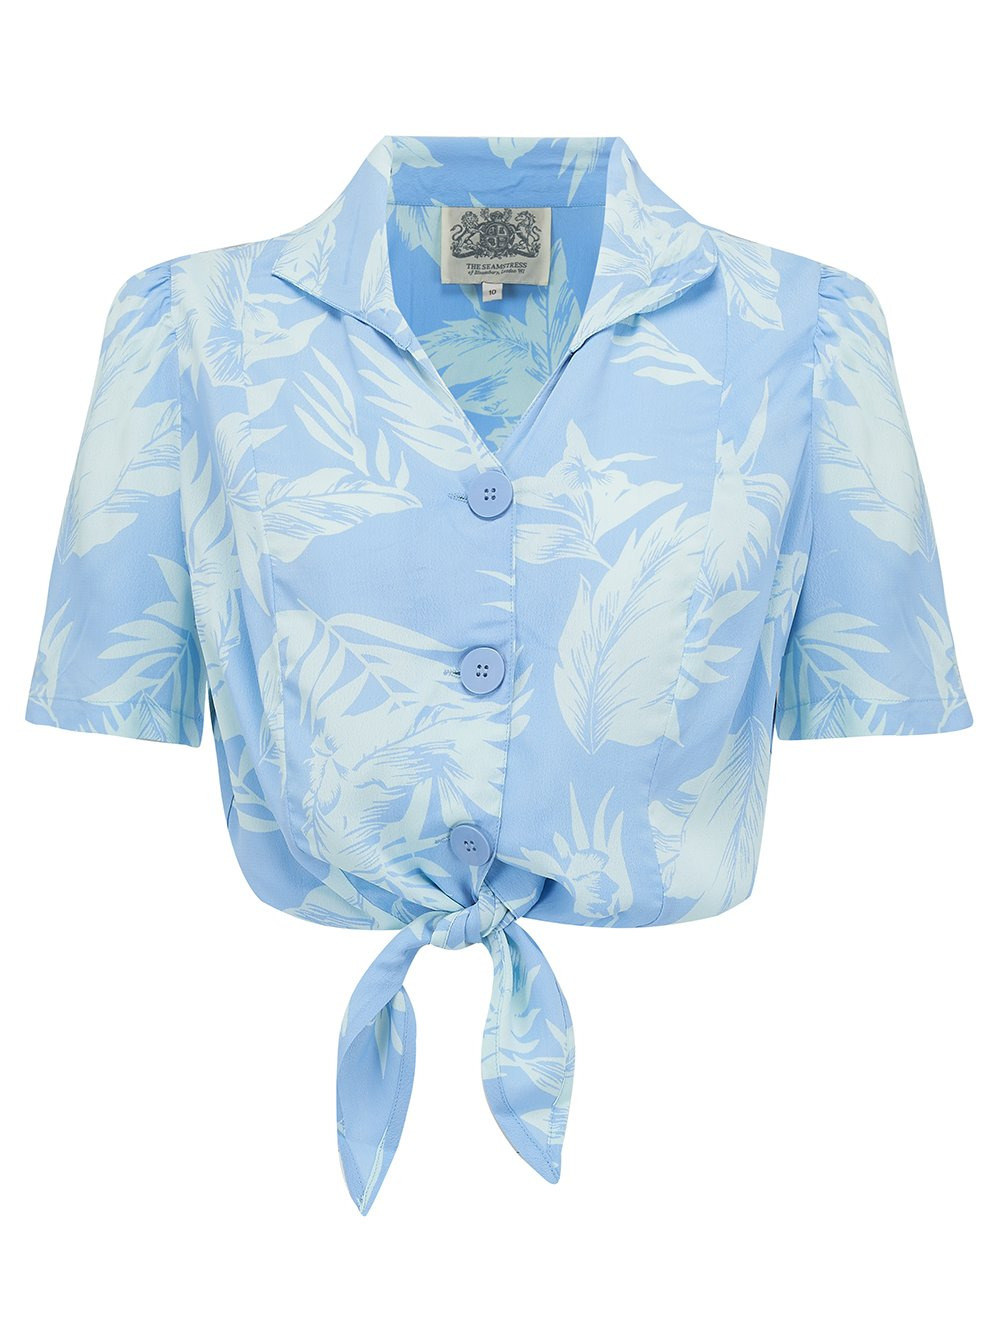 The Seamstress Of Bloomsbury 1940's Vintage Inspired 'Marilyn' Tie-Shirt in 'Blue Hawaii' by The Seamstress of Bloomsbury - RocknRomance Clothing